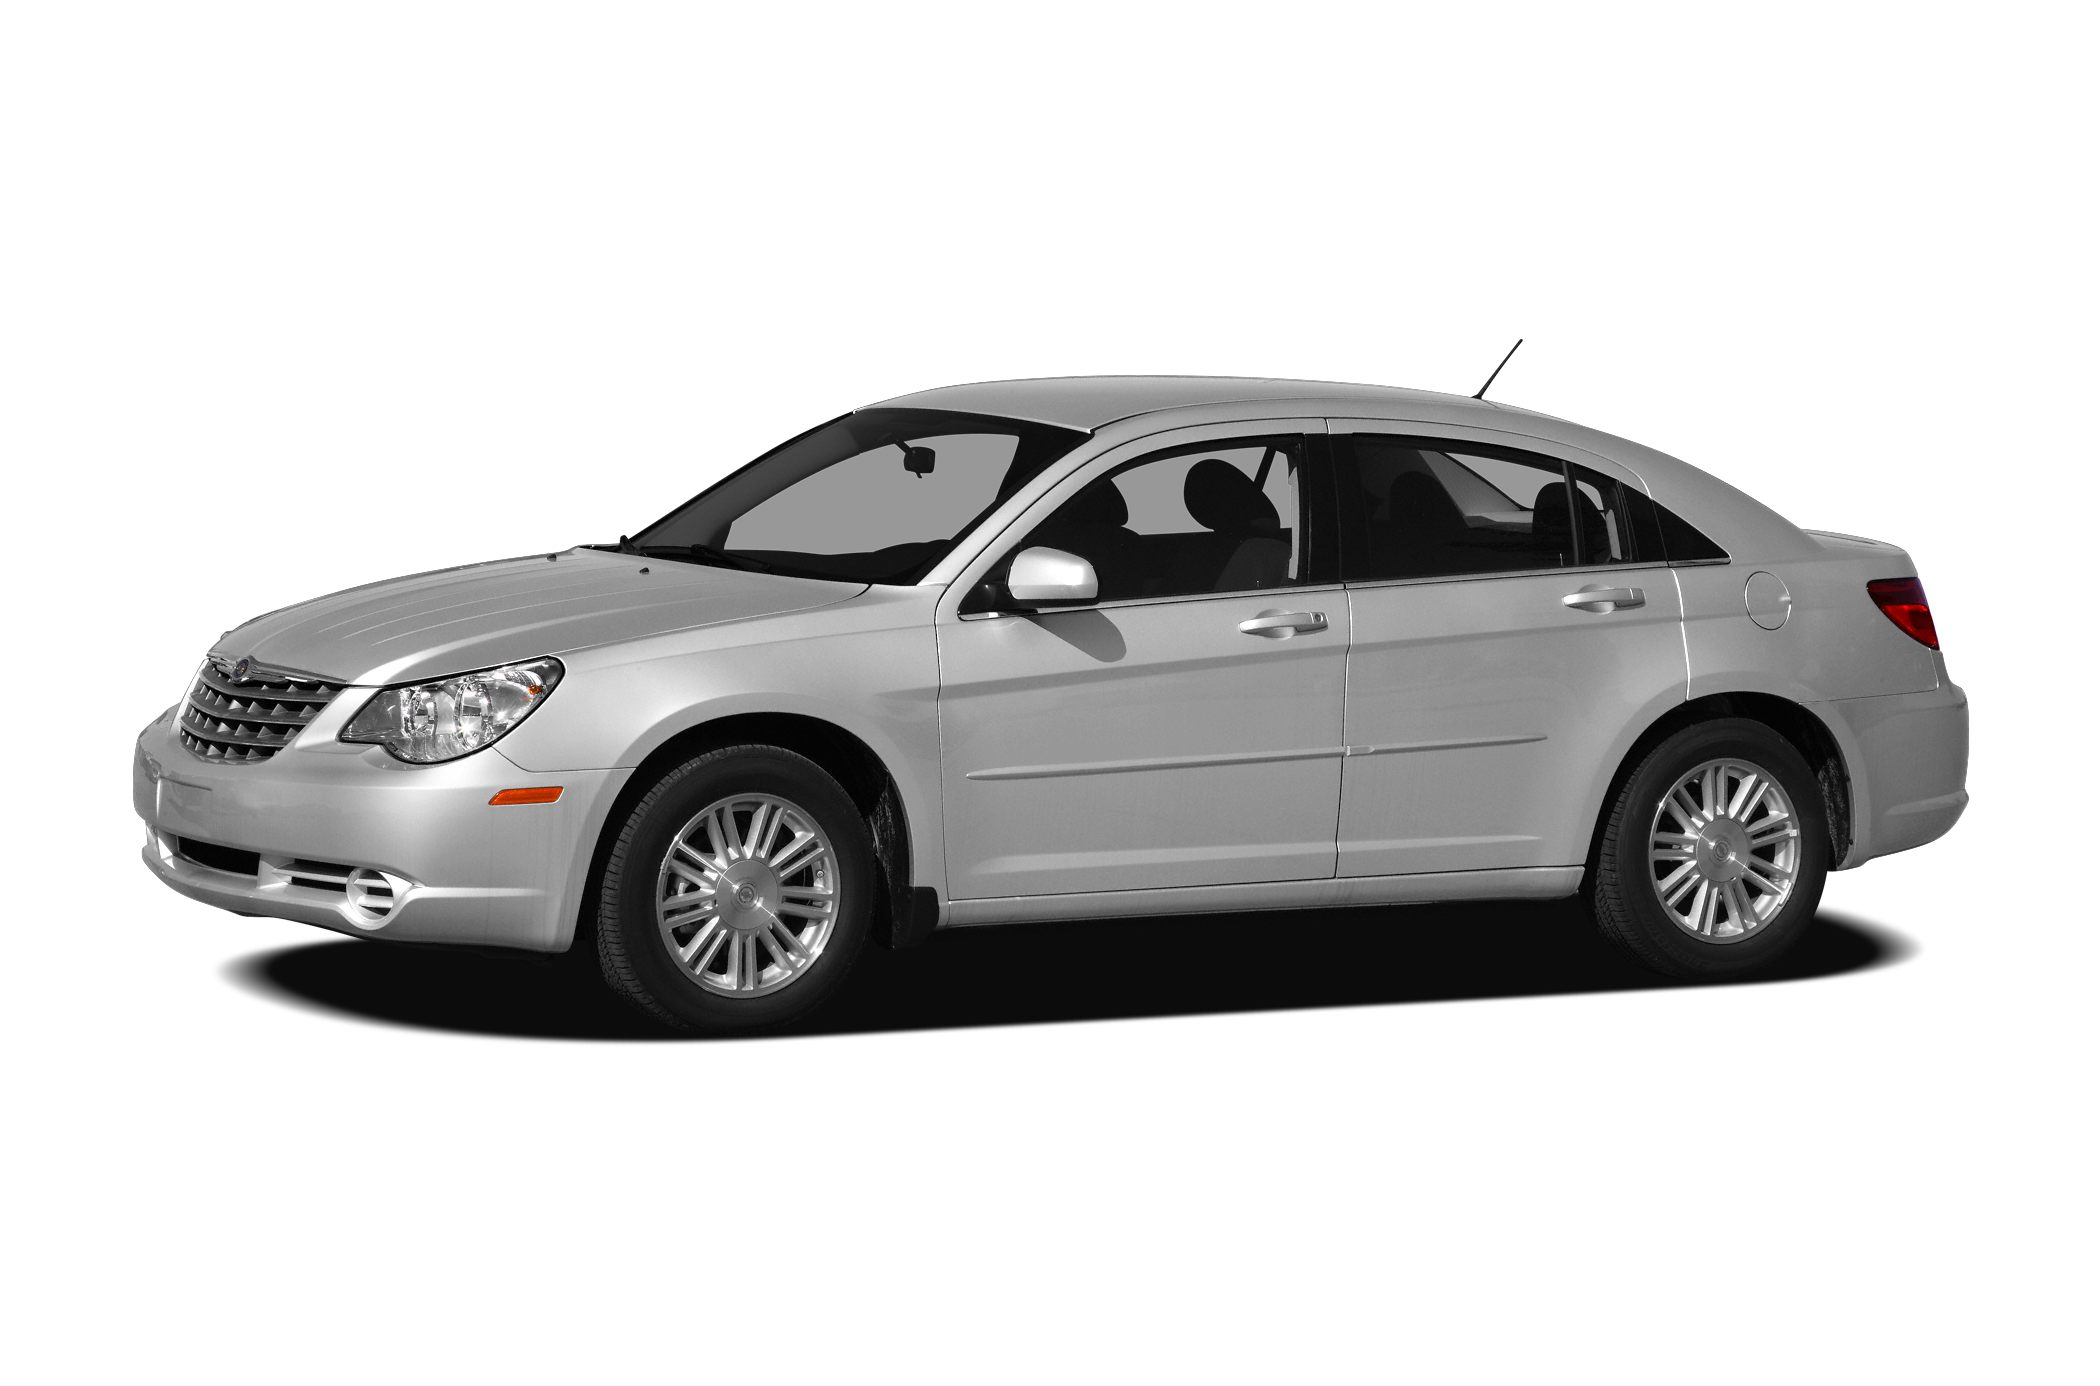 2010 Chrysler Sebring Limited 5 Star Driver Front Crash Rating 12000 Mile Warranty EPA 30 MPG Hw